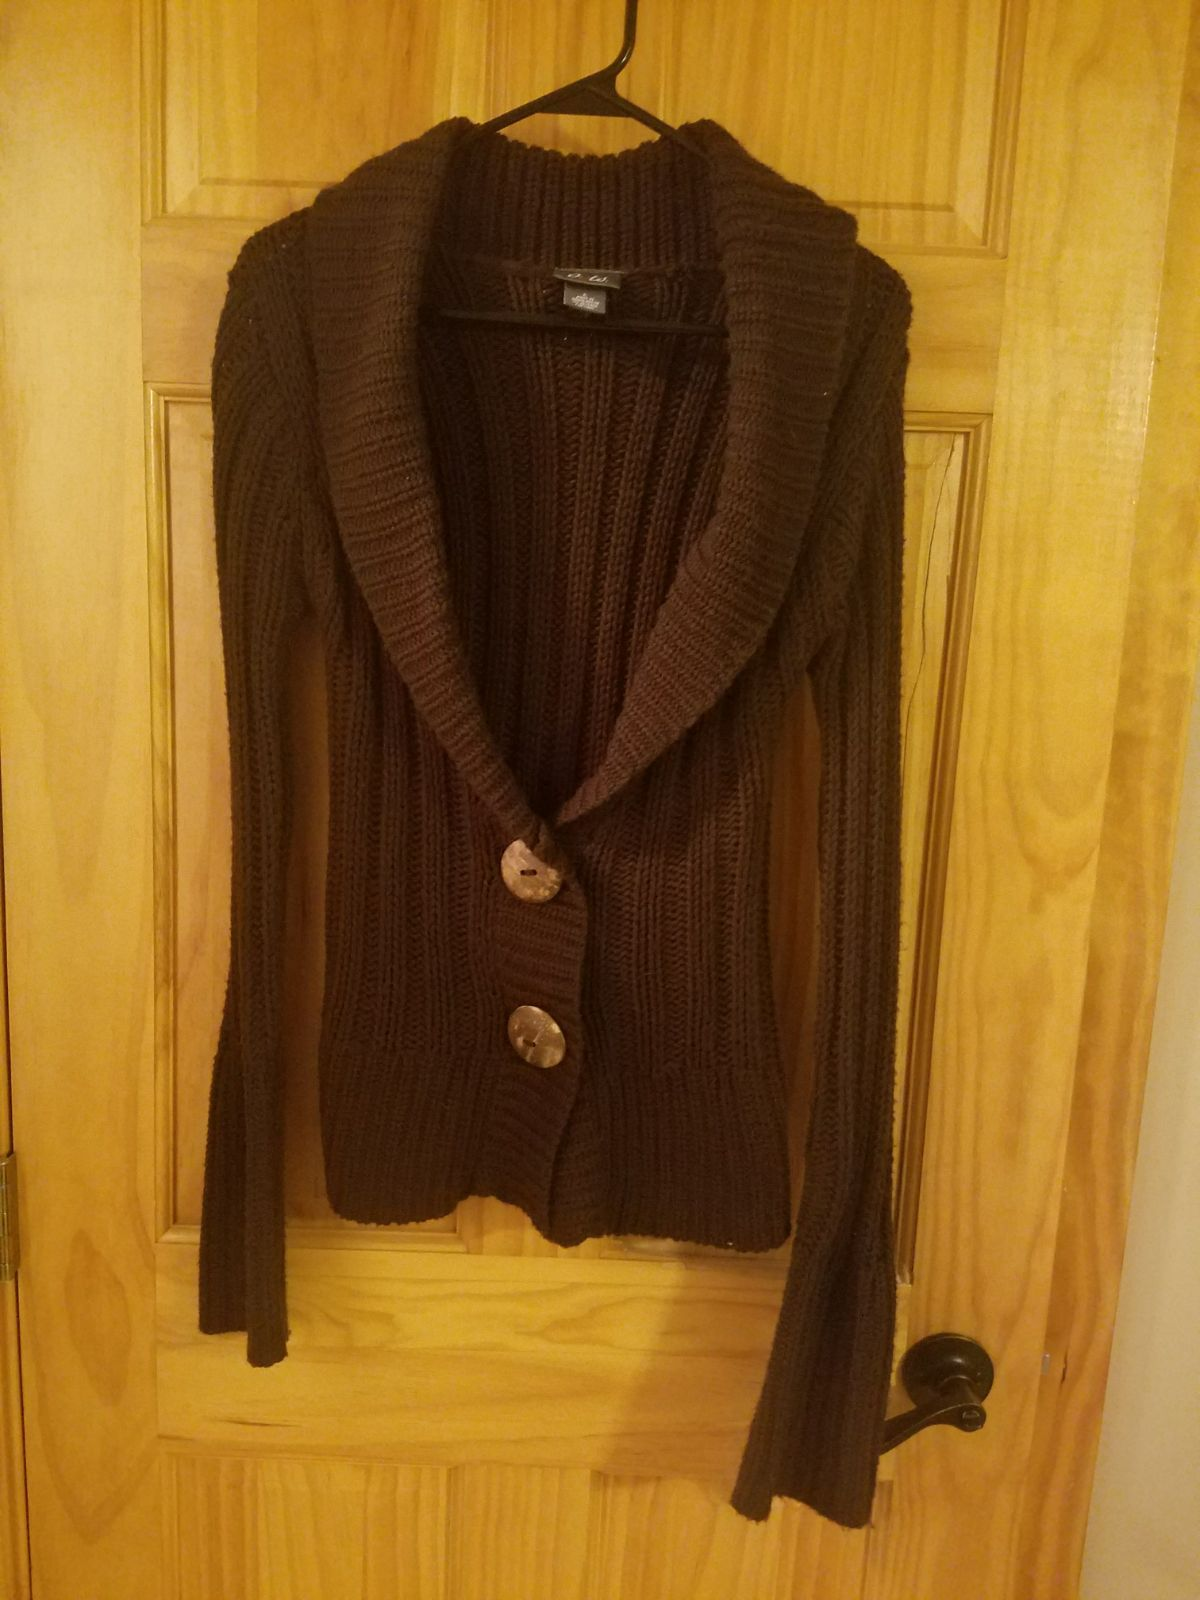 Dots Brown Button up Sweater - Mercari: BUY & SELL THINGS YOU LOVE